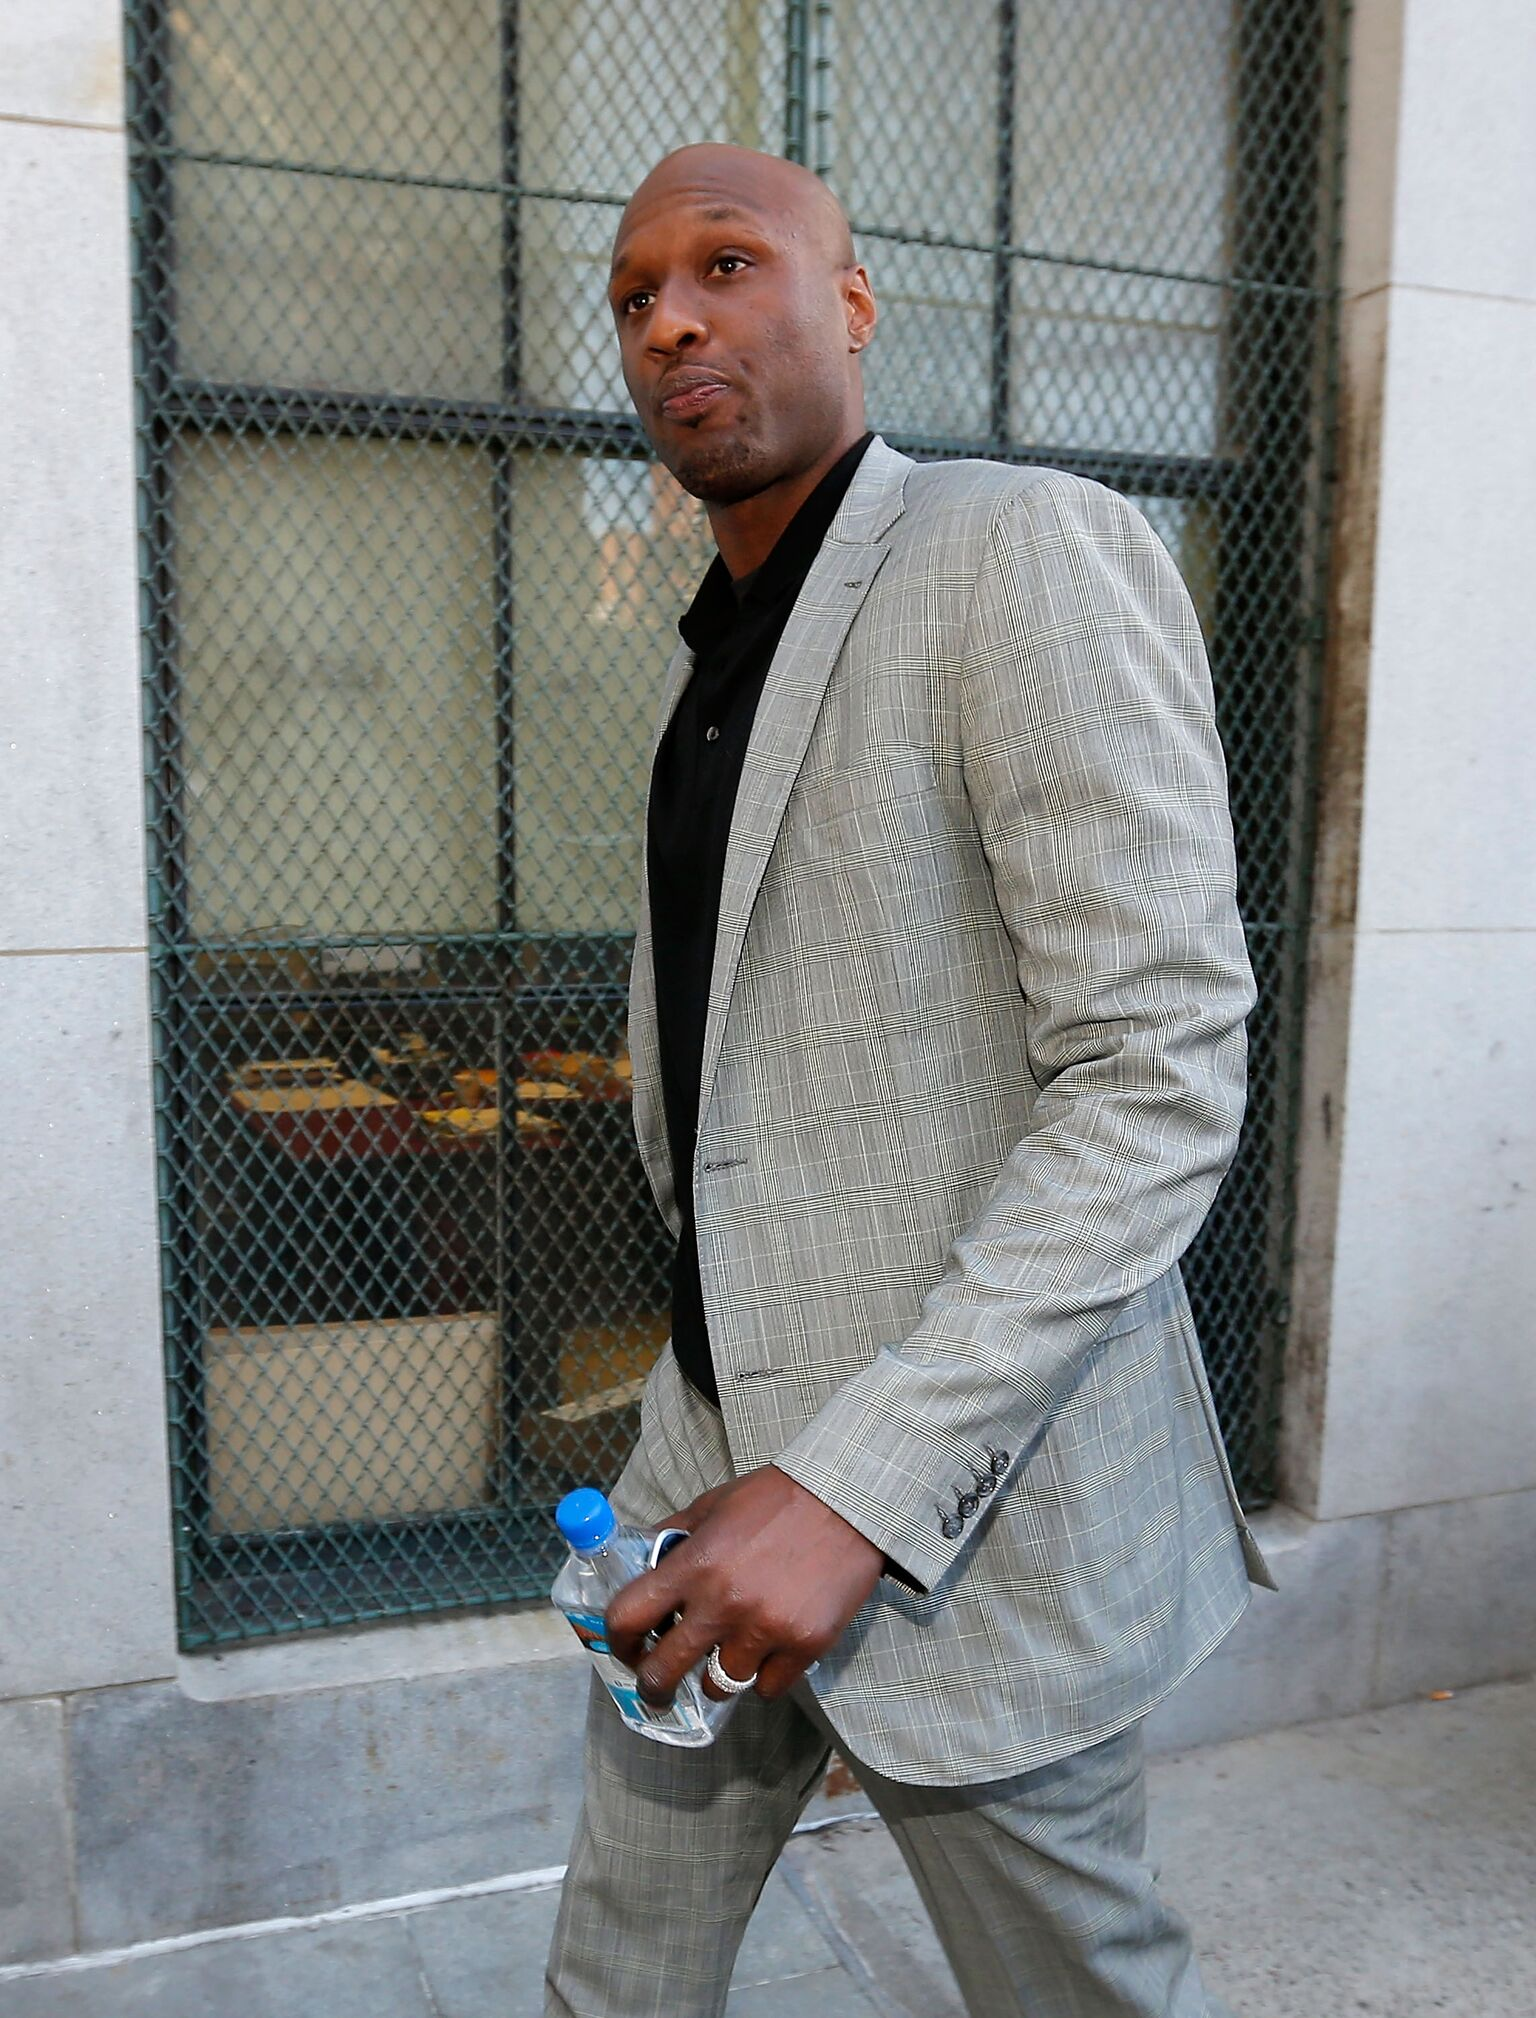 Lamar Odom arrives to attend a custody hearing with ex-girlfriend Liza Morales | Getty Images